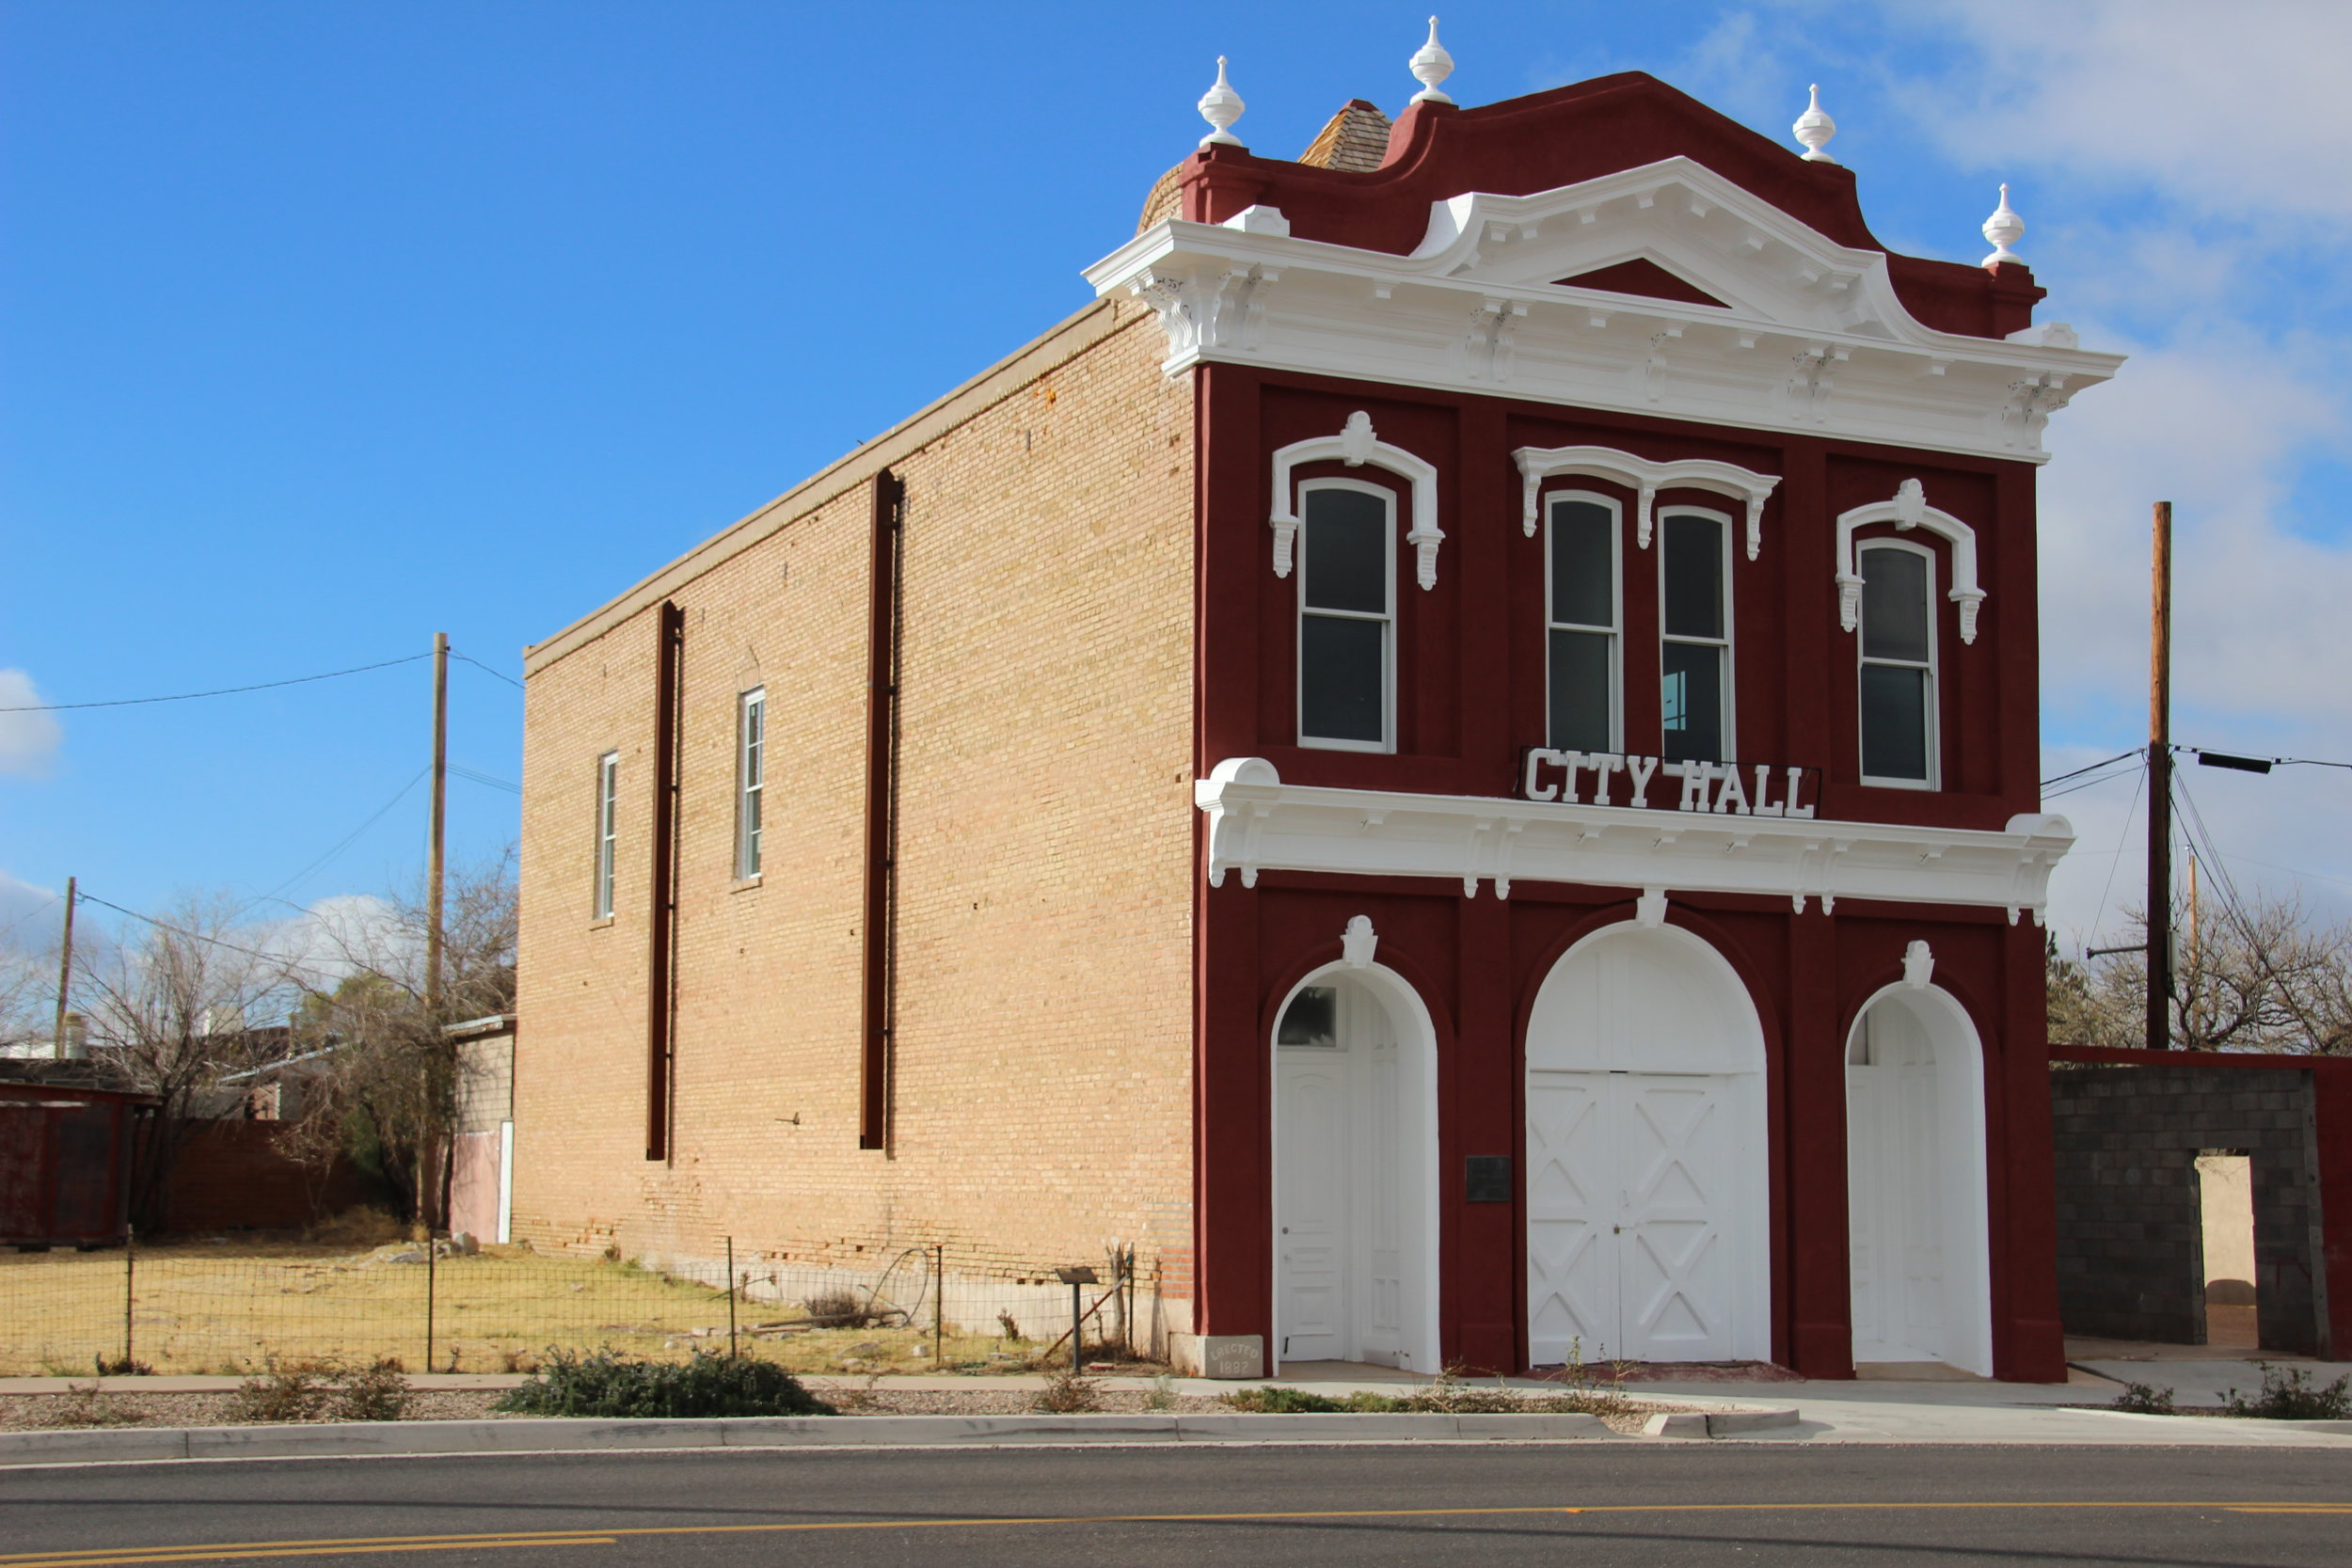 Tombstone City Hall - Tombstone, ArizonaMarshals Office